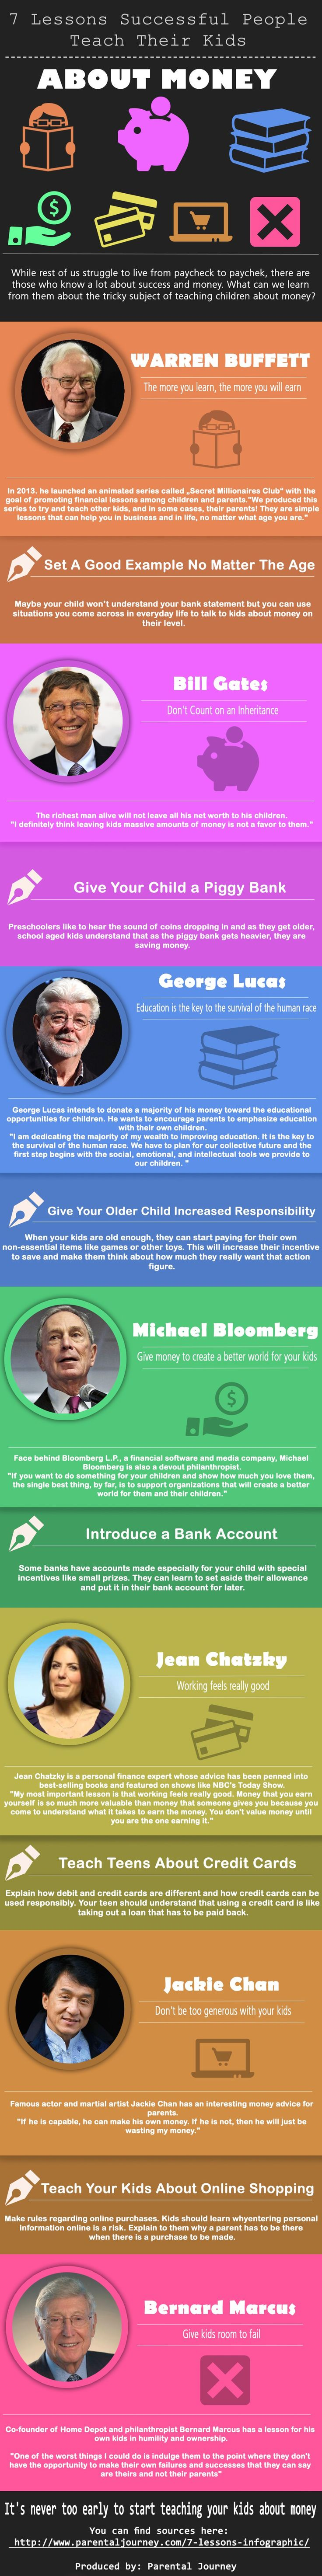 Money lessons for everyone but really good advice for teaching kids about money.